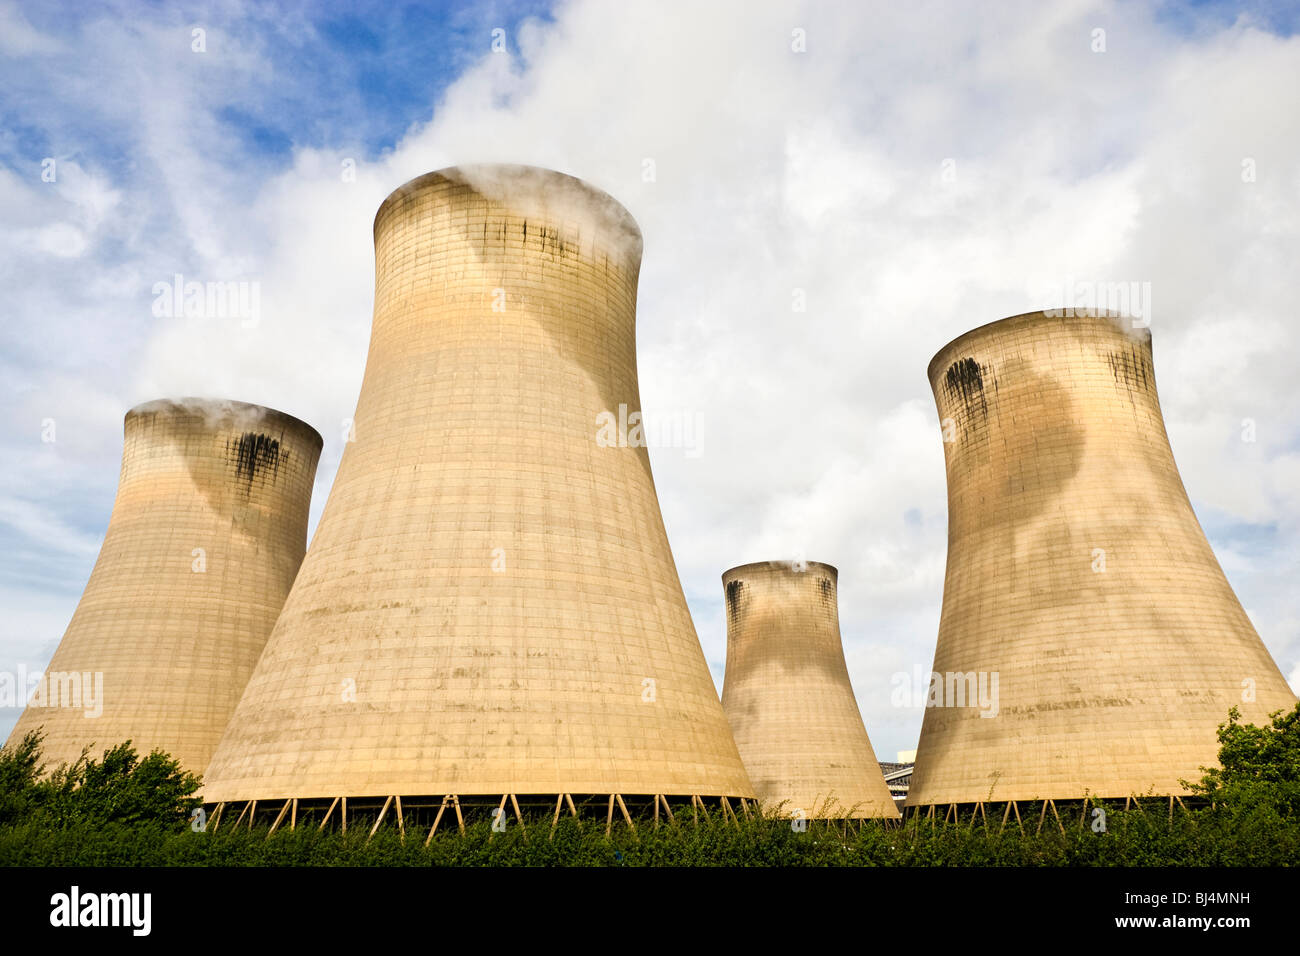 Cooling tower chimneys at coal fired power plant UK - Stock Image